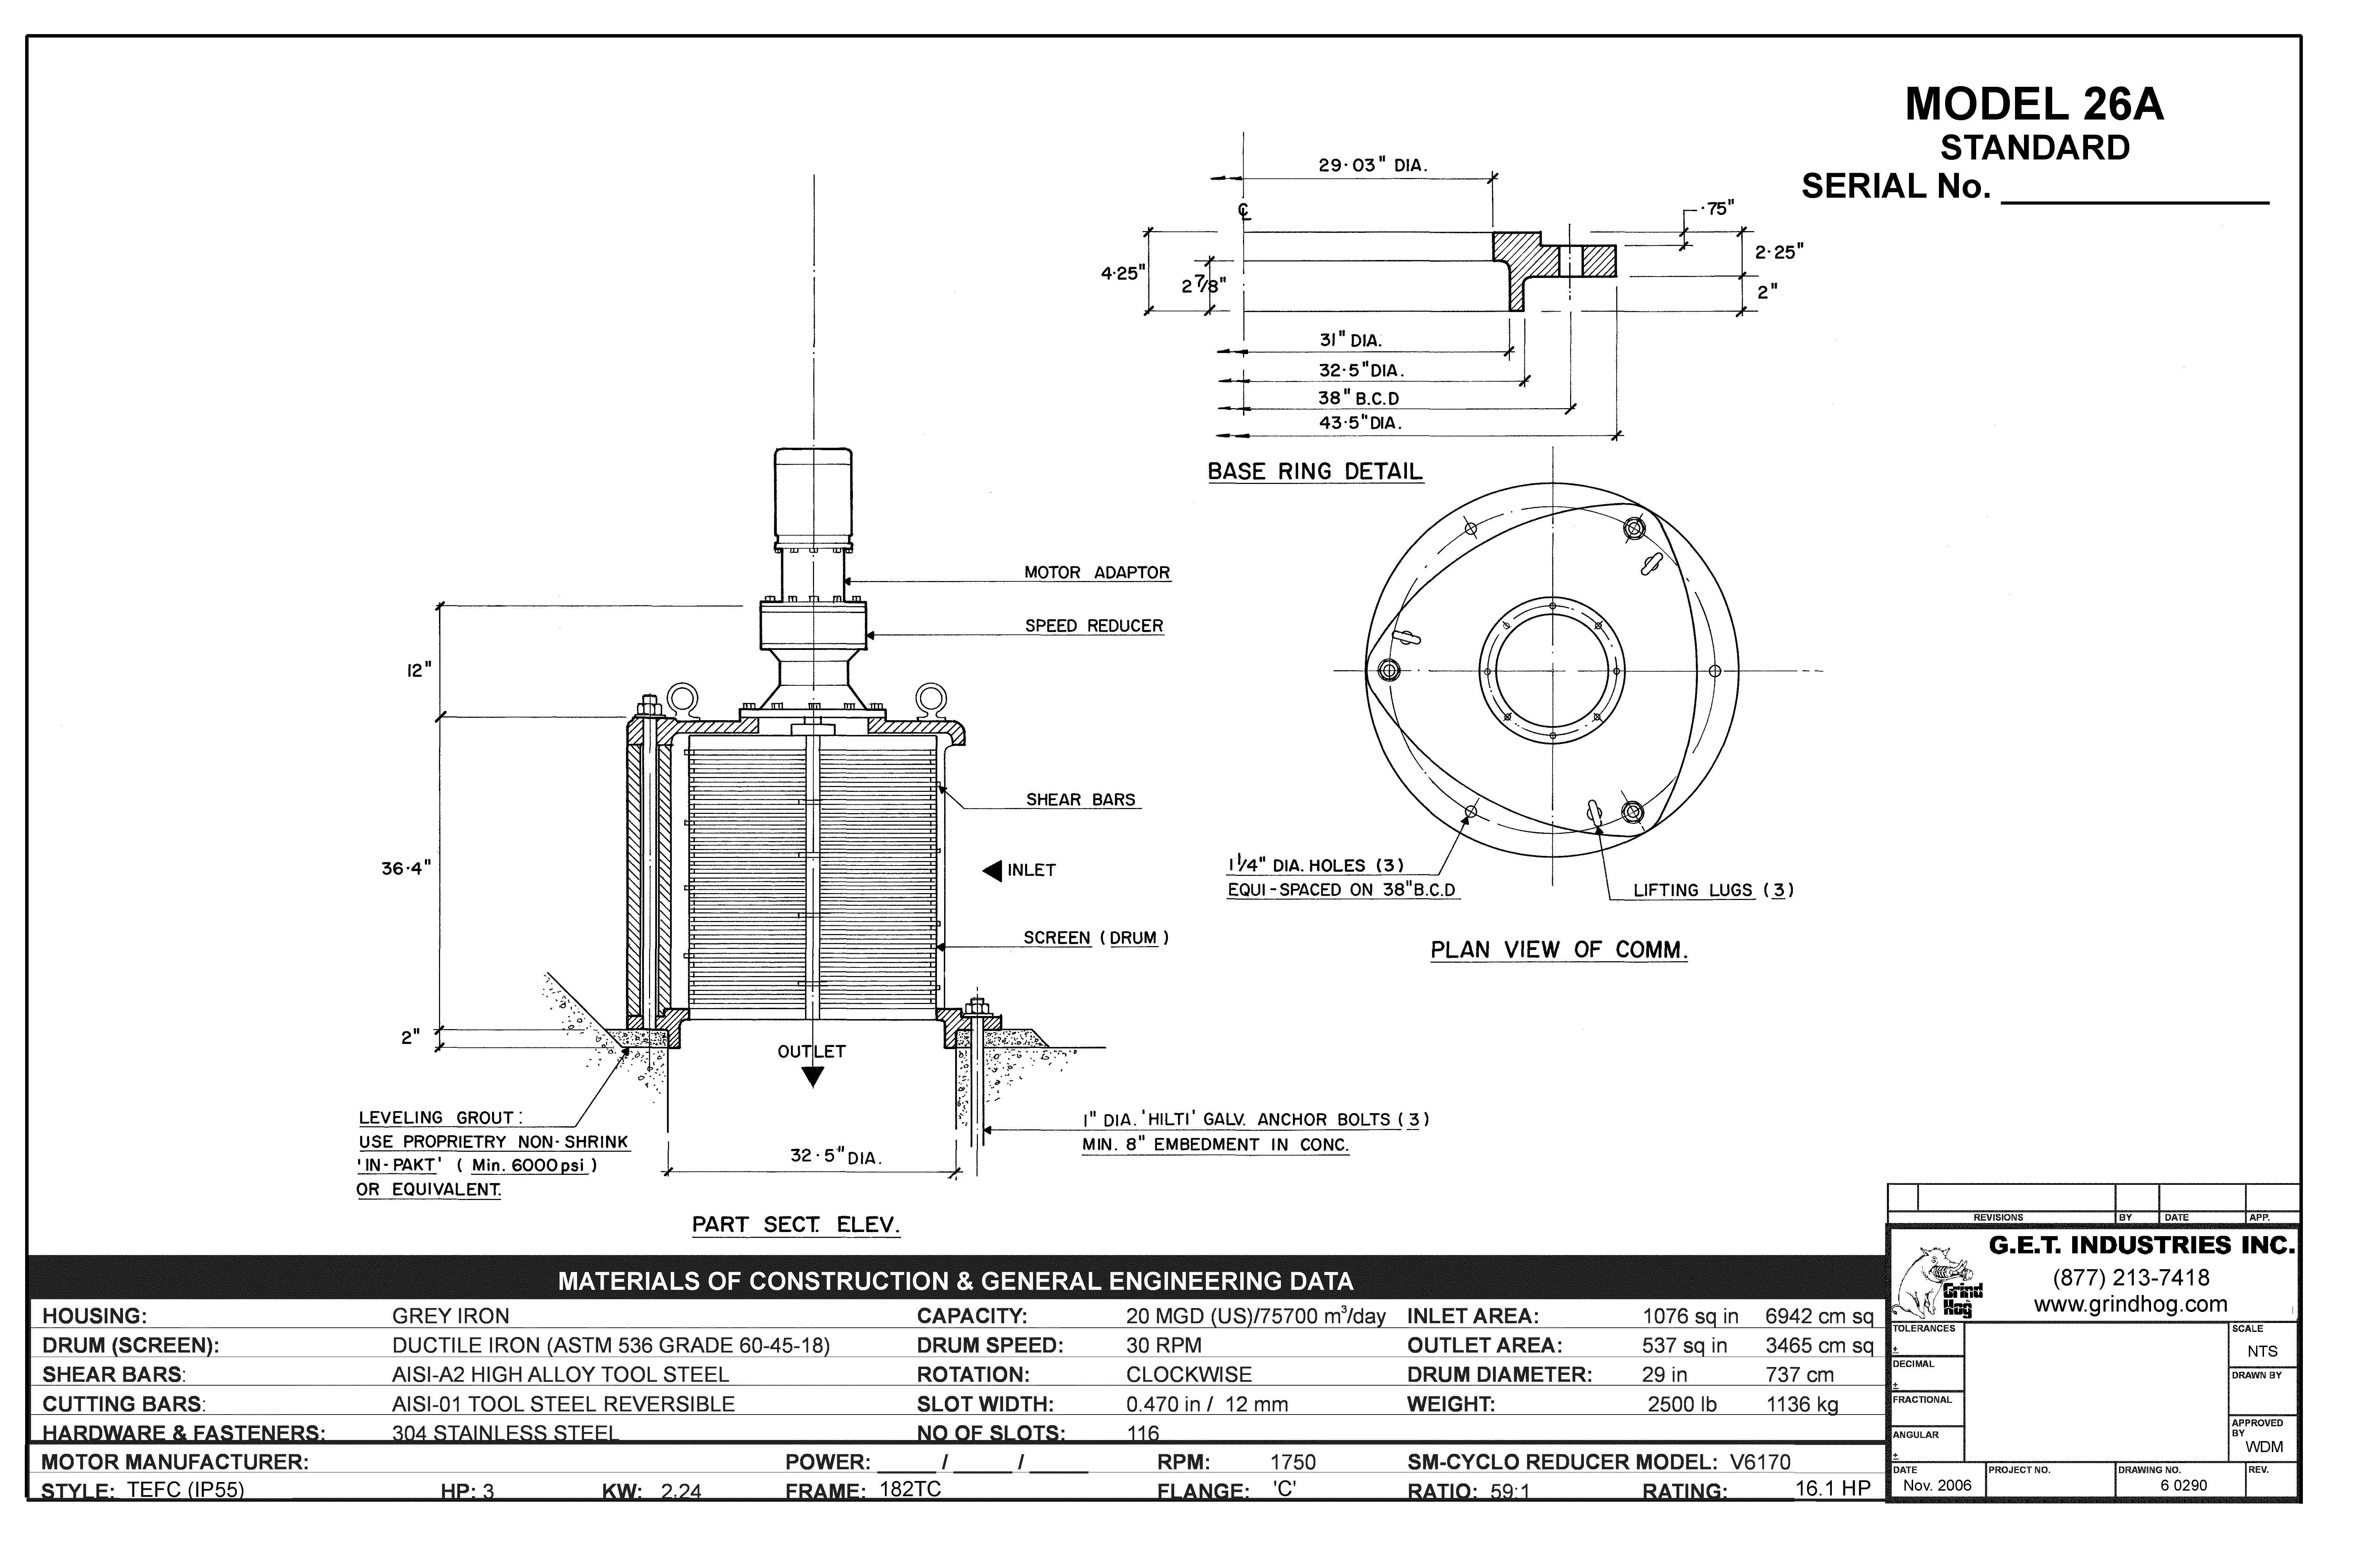 data drawing for Model 26A